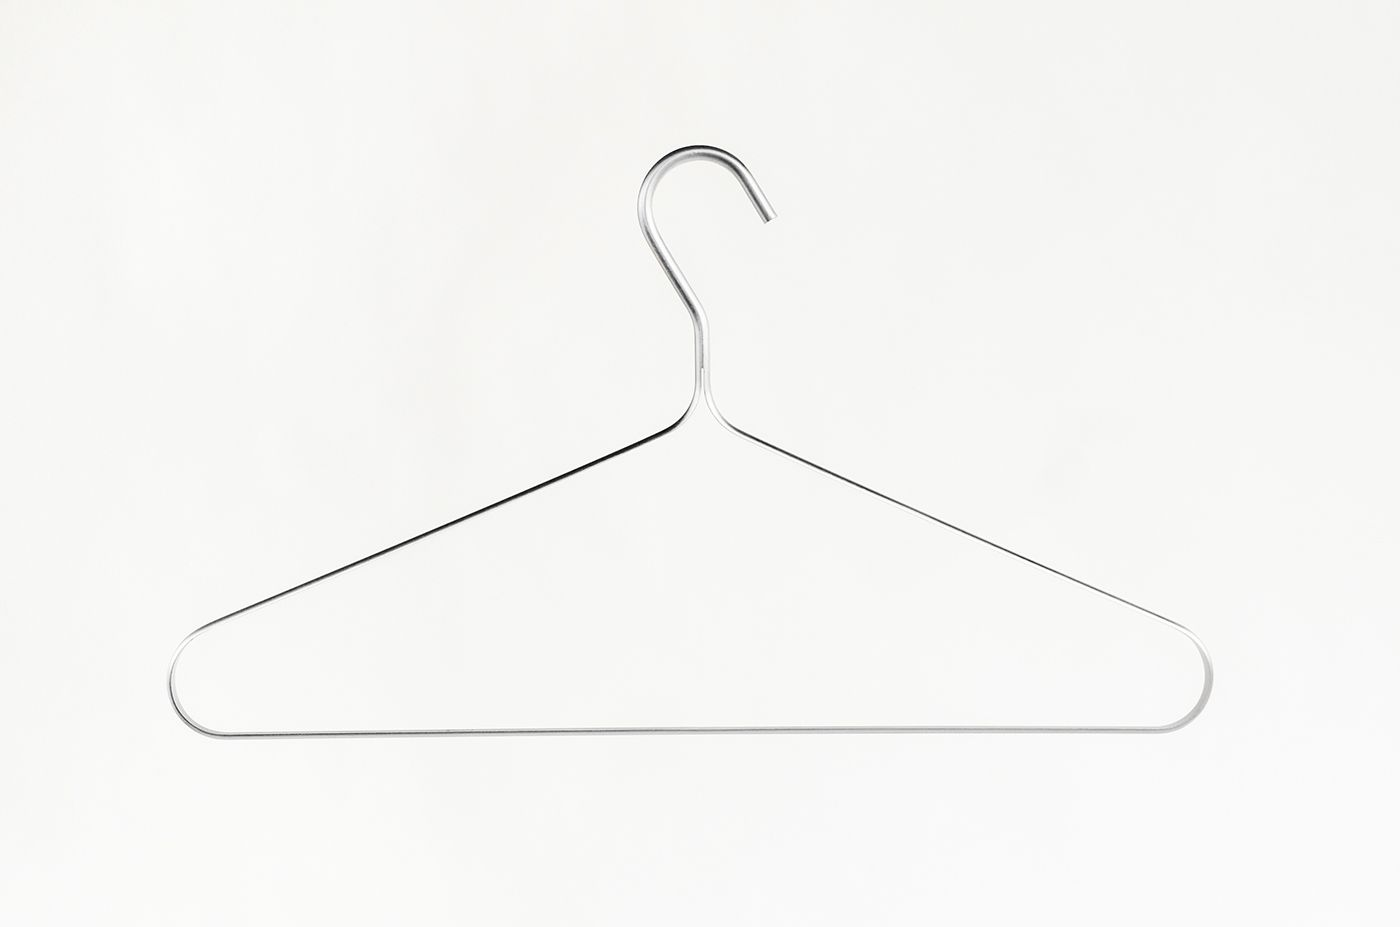 Pin By 暖暖 陈 On Hanger Clothes Hanger Hanger Design Process